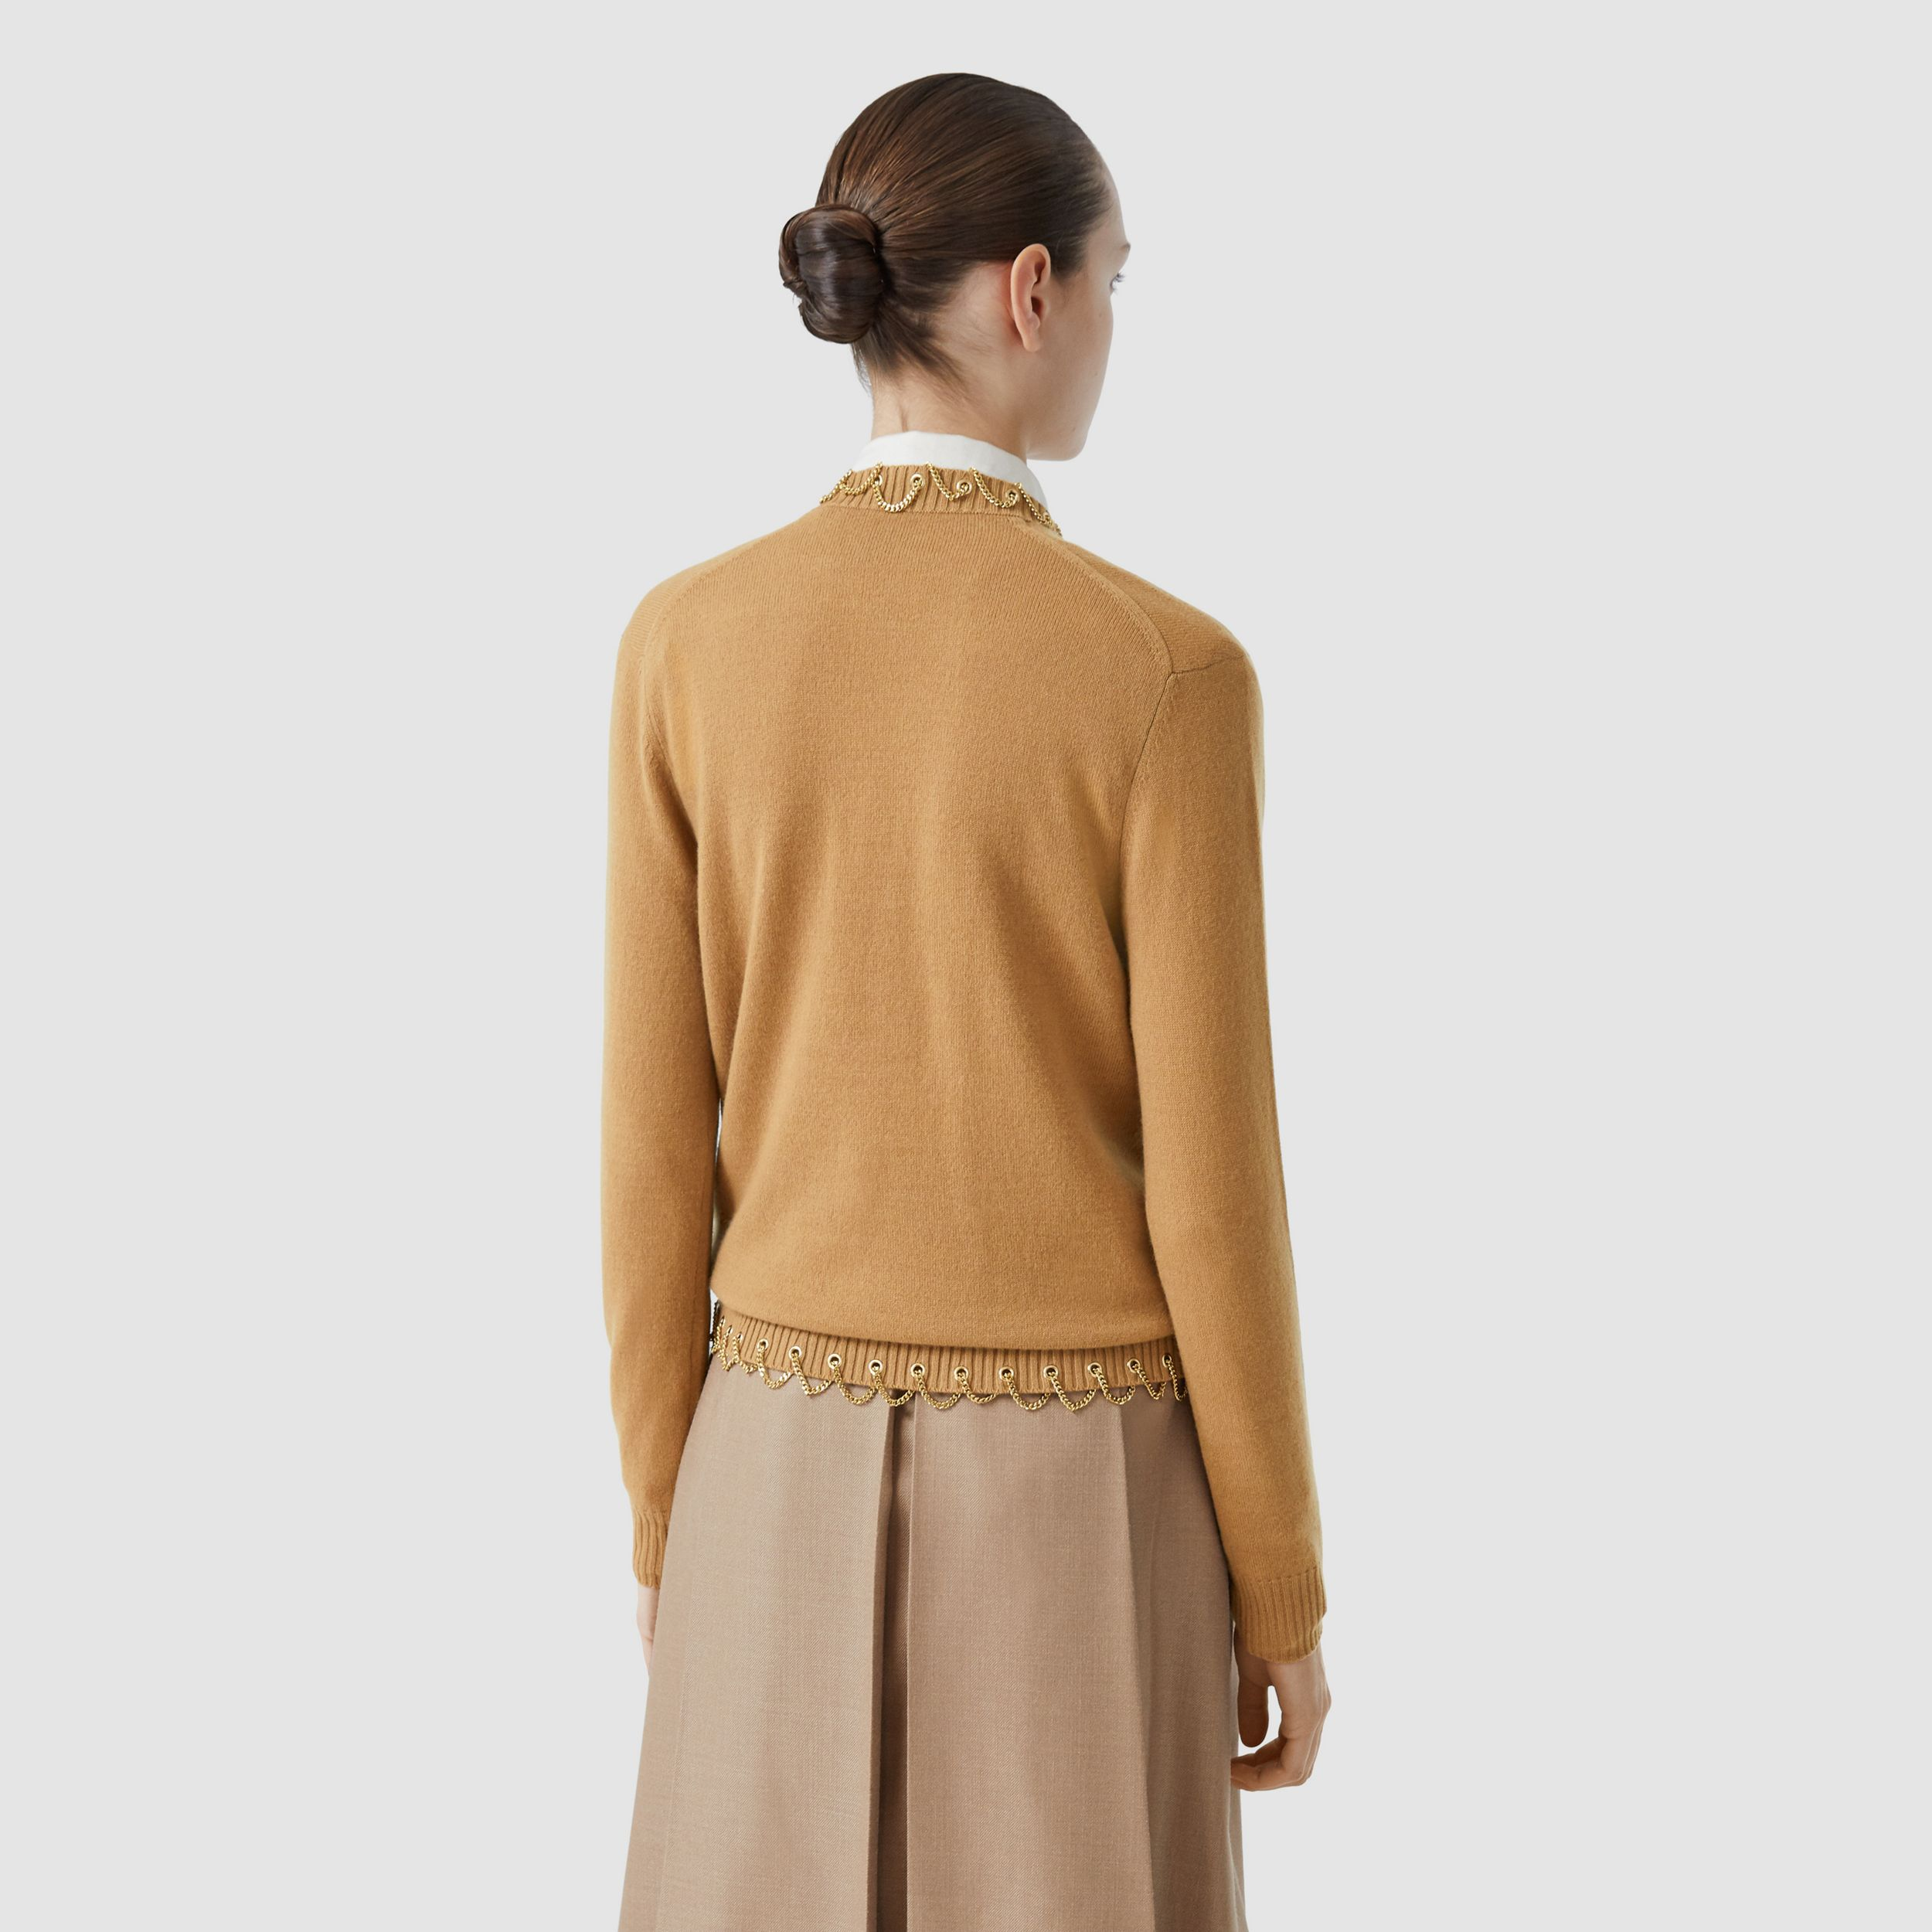 Chain Detail Cashmere Sweater in Camel - Women | Burberry - 3